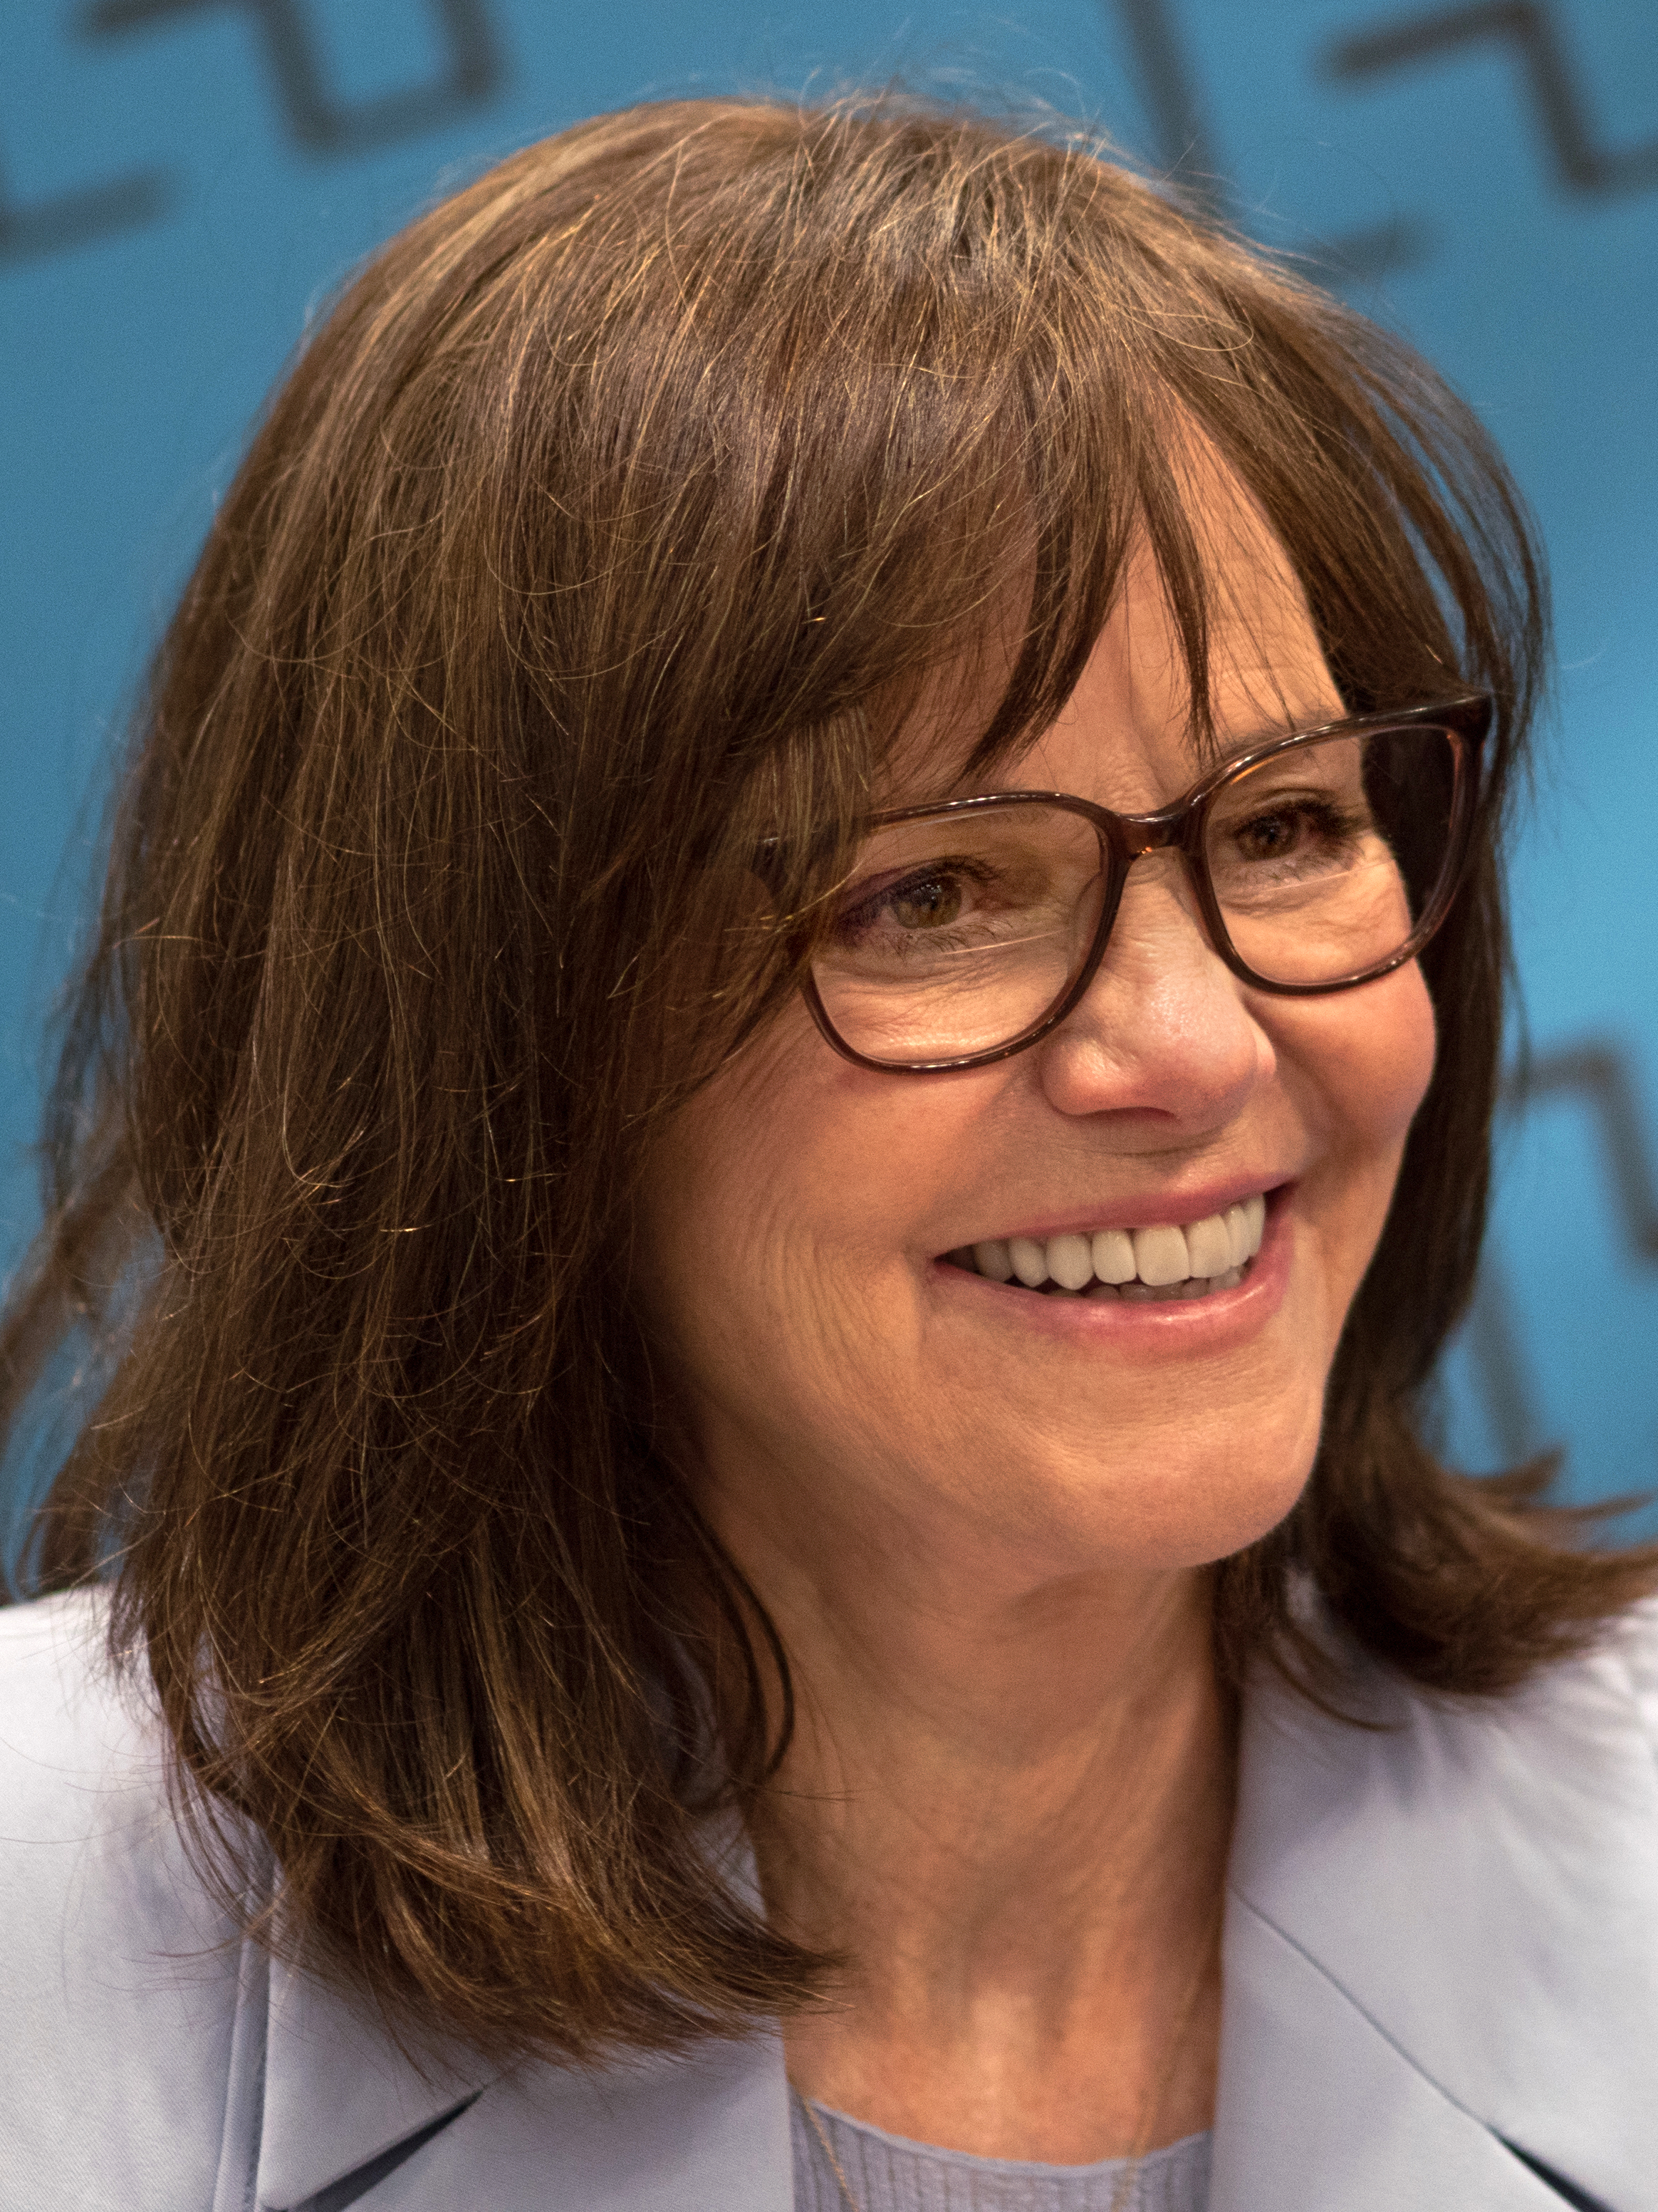 The 73-year old daughter of father (?) and mother(?) Sally Field in 2020 photo. Sally Field earned a million dollar salary - leaving the net worth at million in 2020